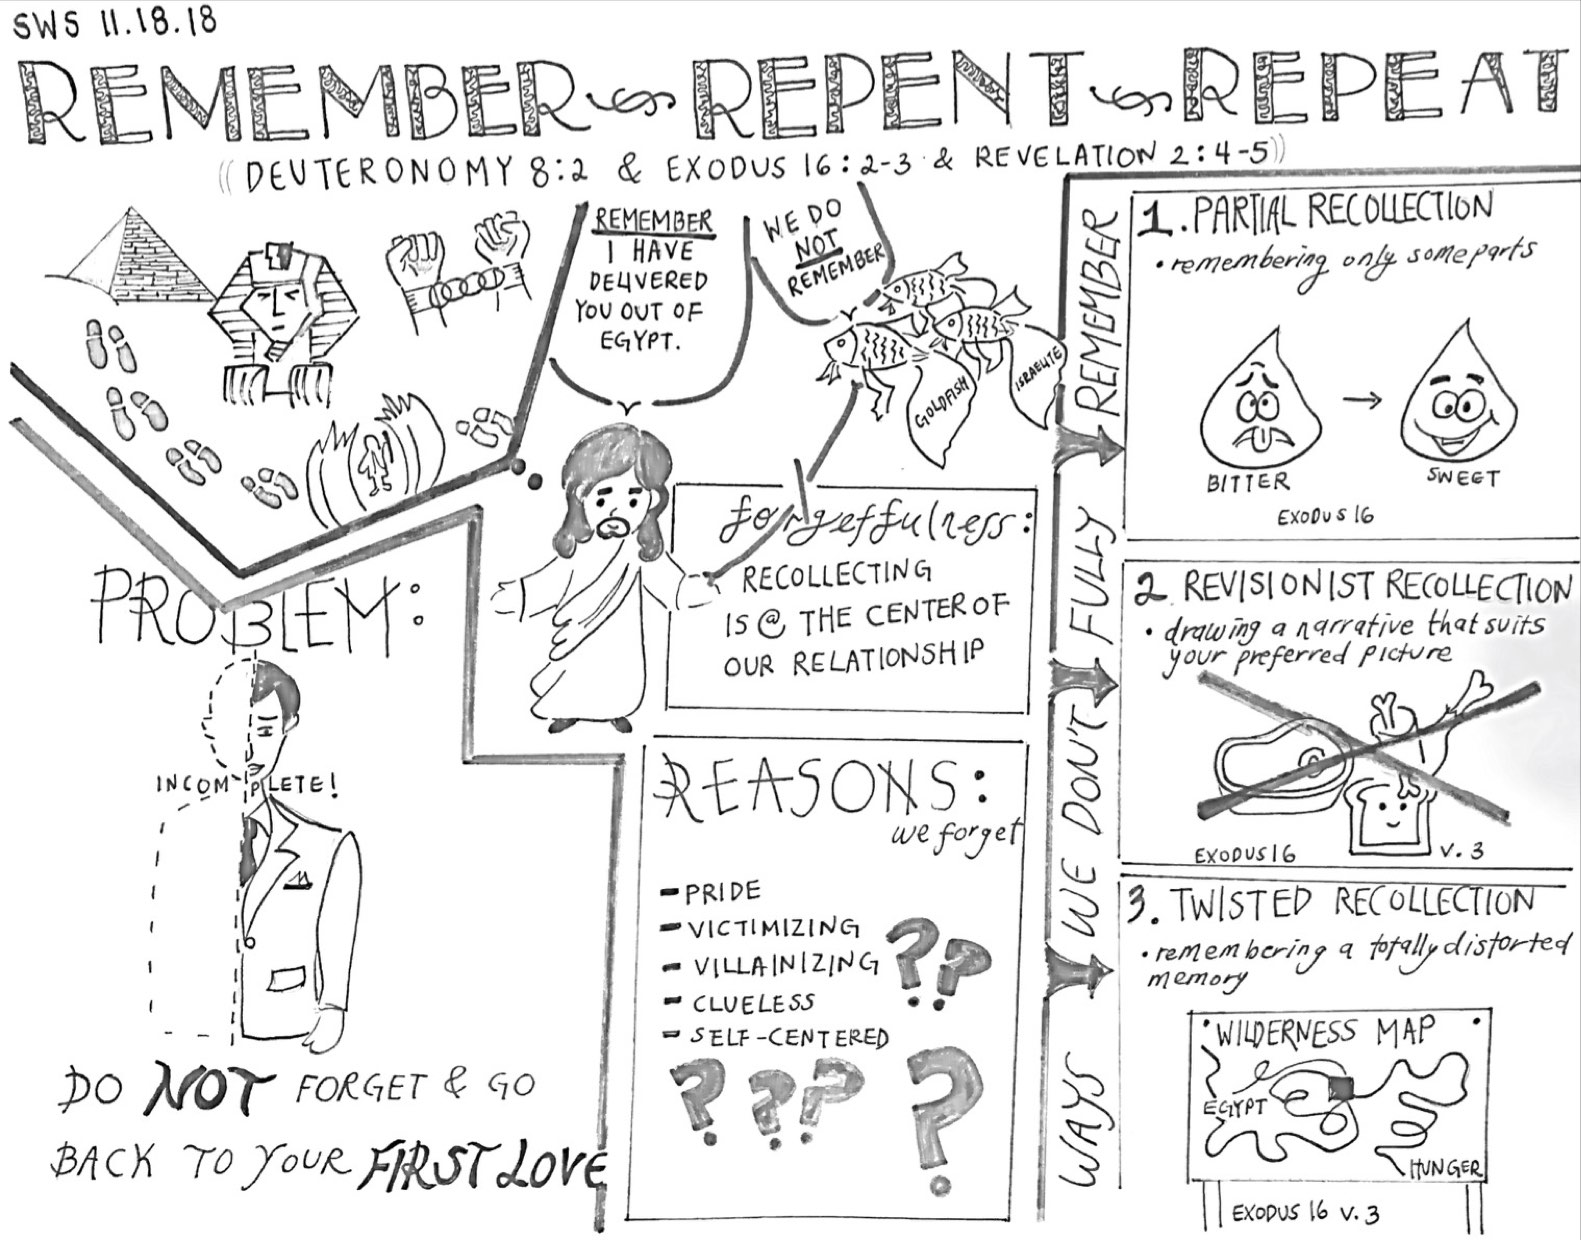 Nov 18 - Remember & Recollect